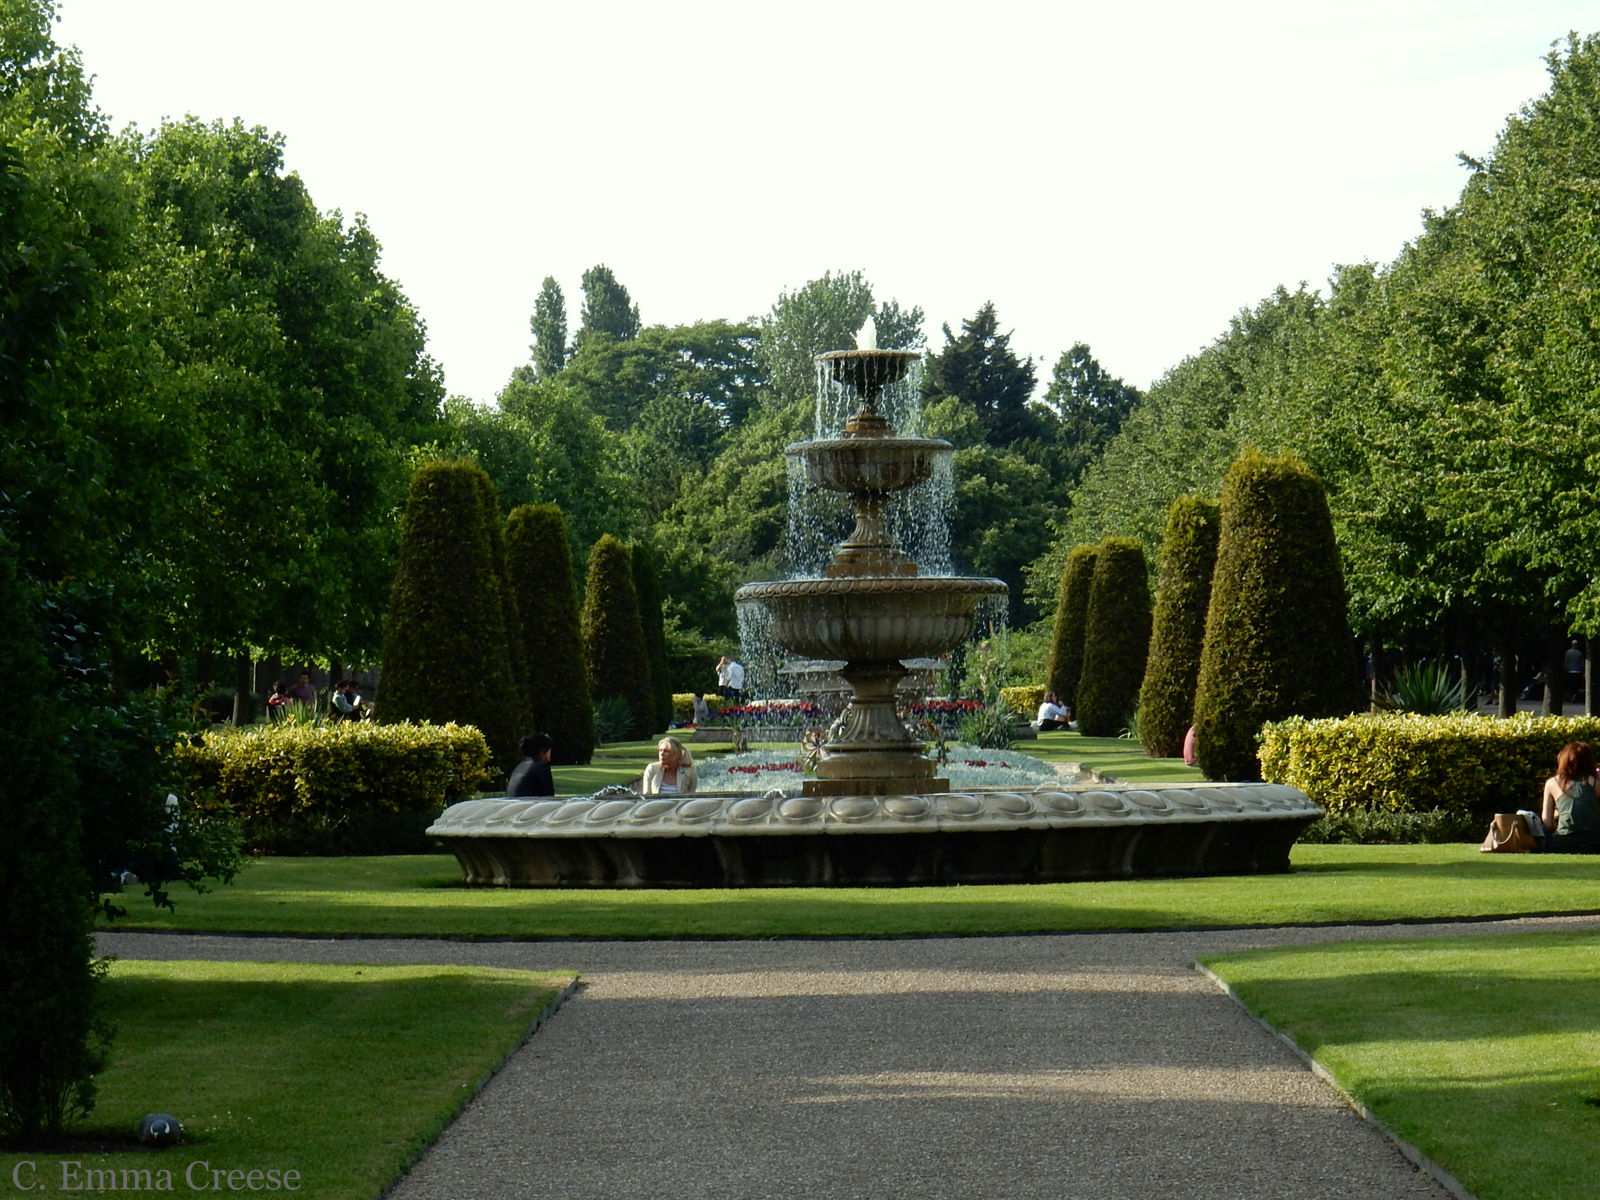 London Regents Park and why I love it